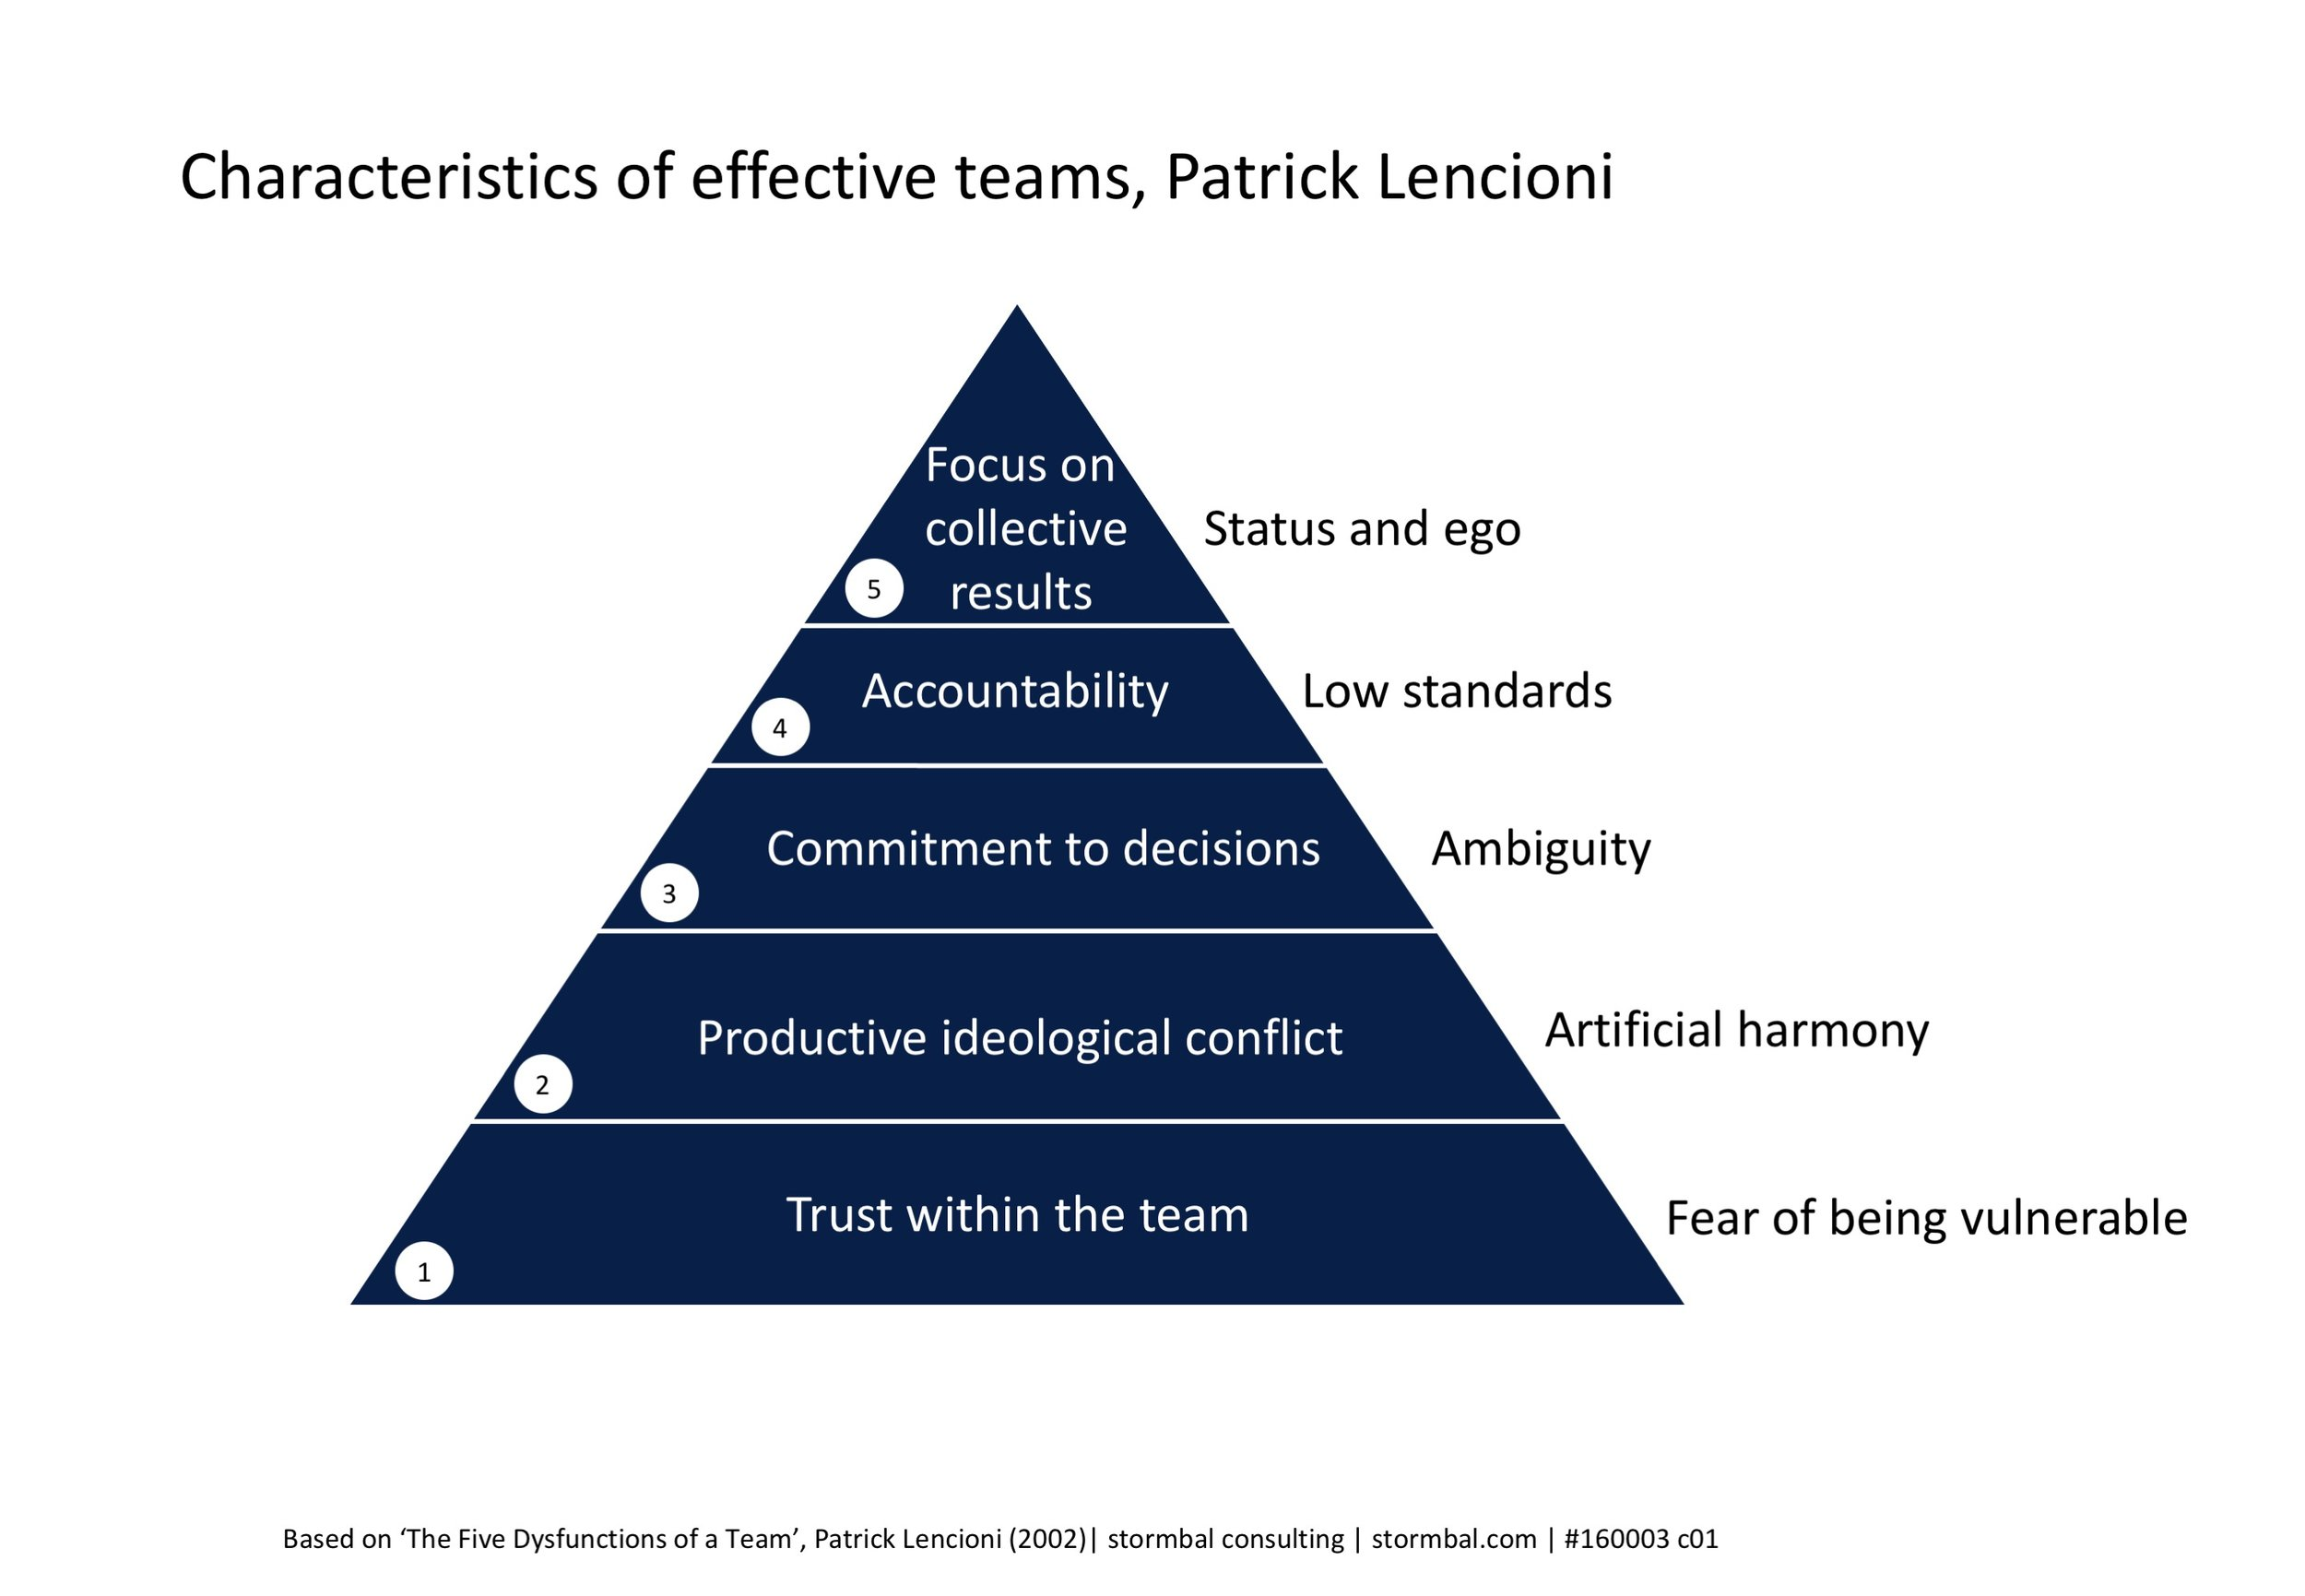 Characteristics of effective teams, Patrick Lencioni | click on image to enlarge